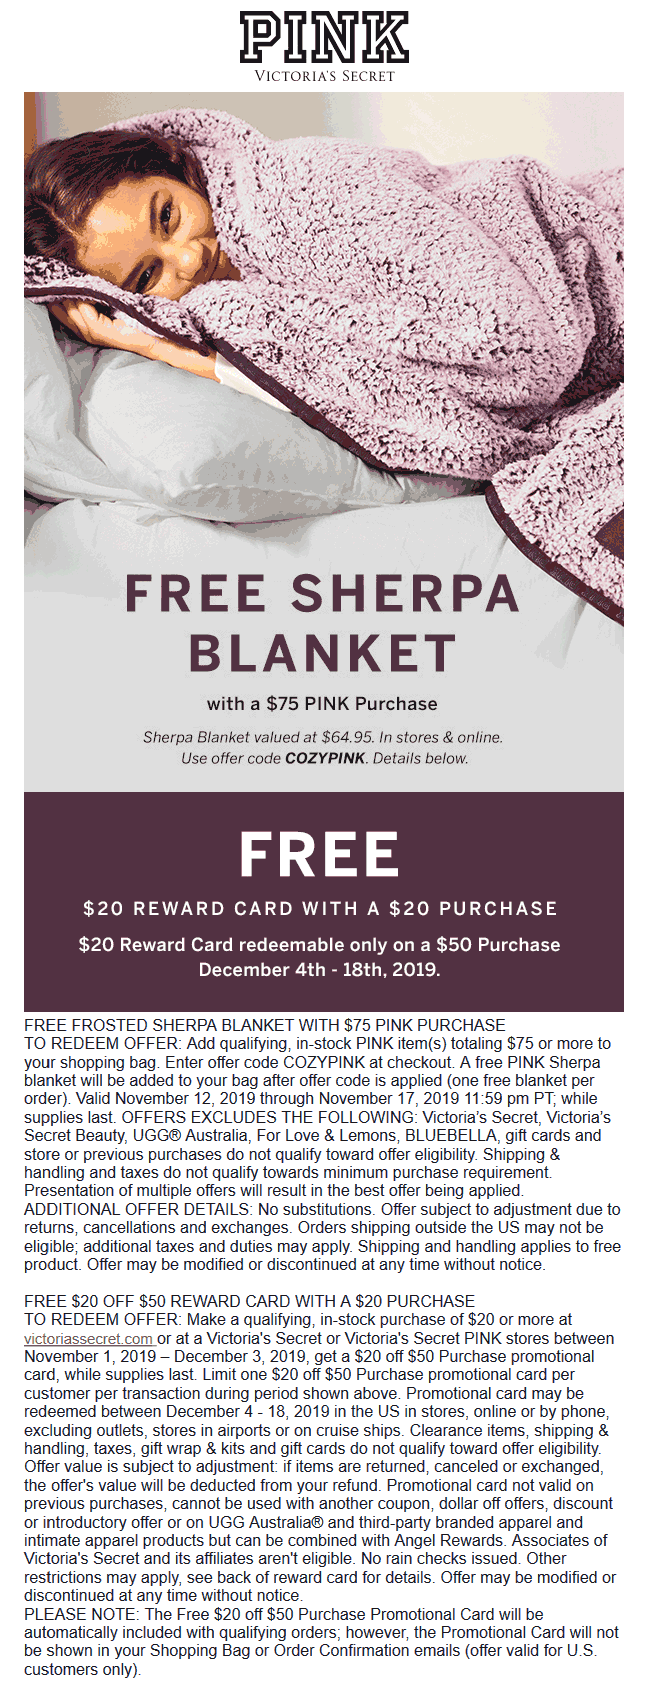 PINK Coupon December 2019 Free sherpa blanket with $75 spent at PINK, or online via promo code COZYPINK